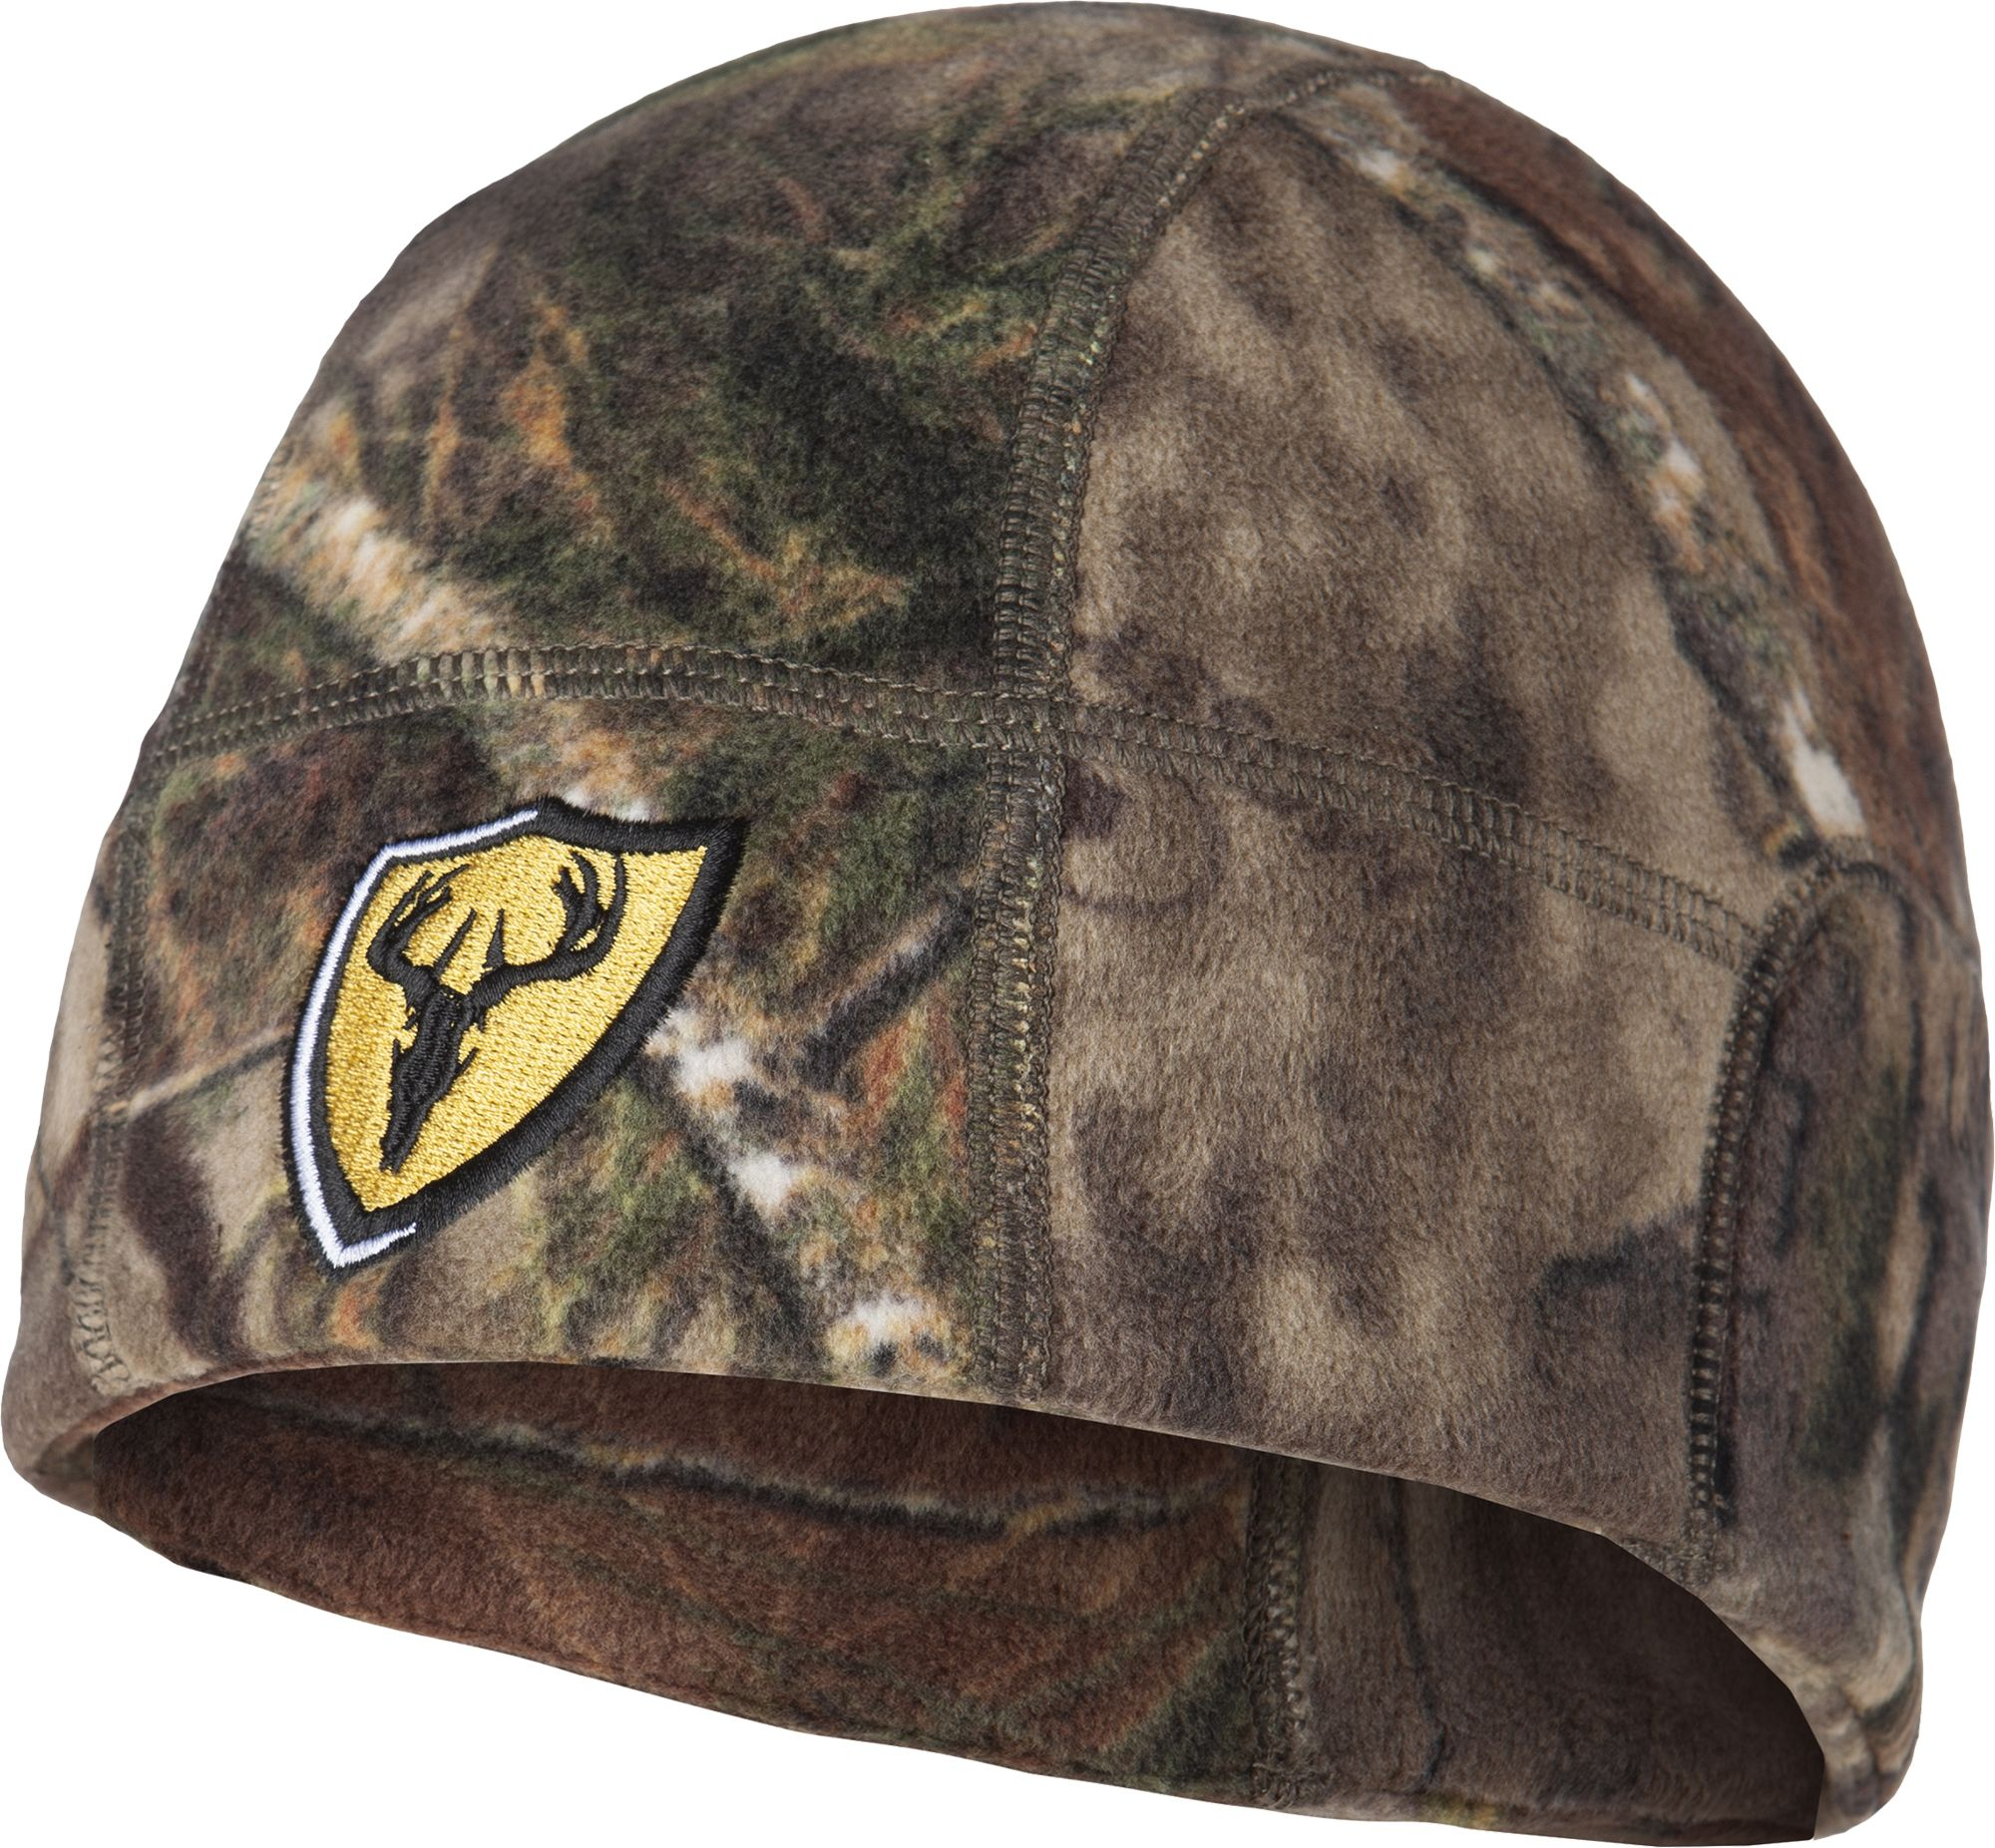 Blocker Outdoors ScentBlocker Skull Cap, Women's, Size: One size, Mossy Oak Country thumbnail